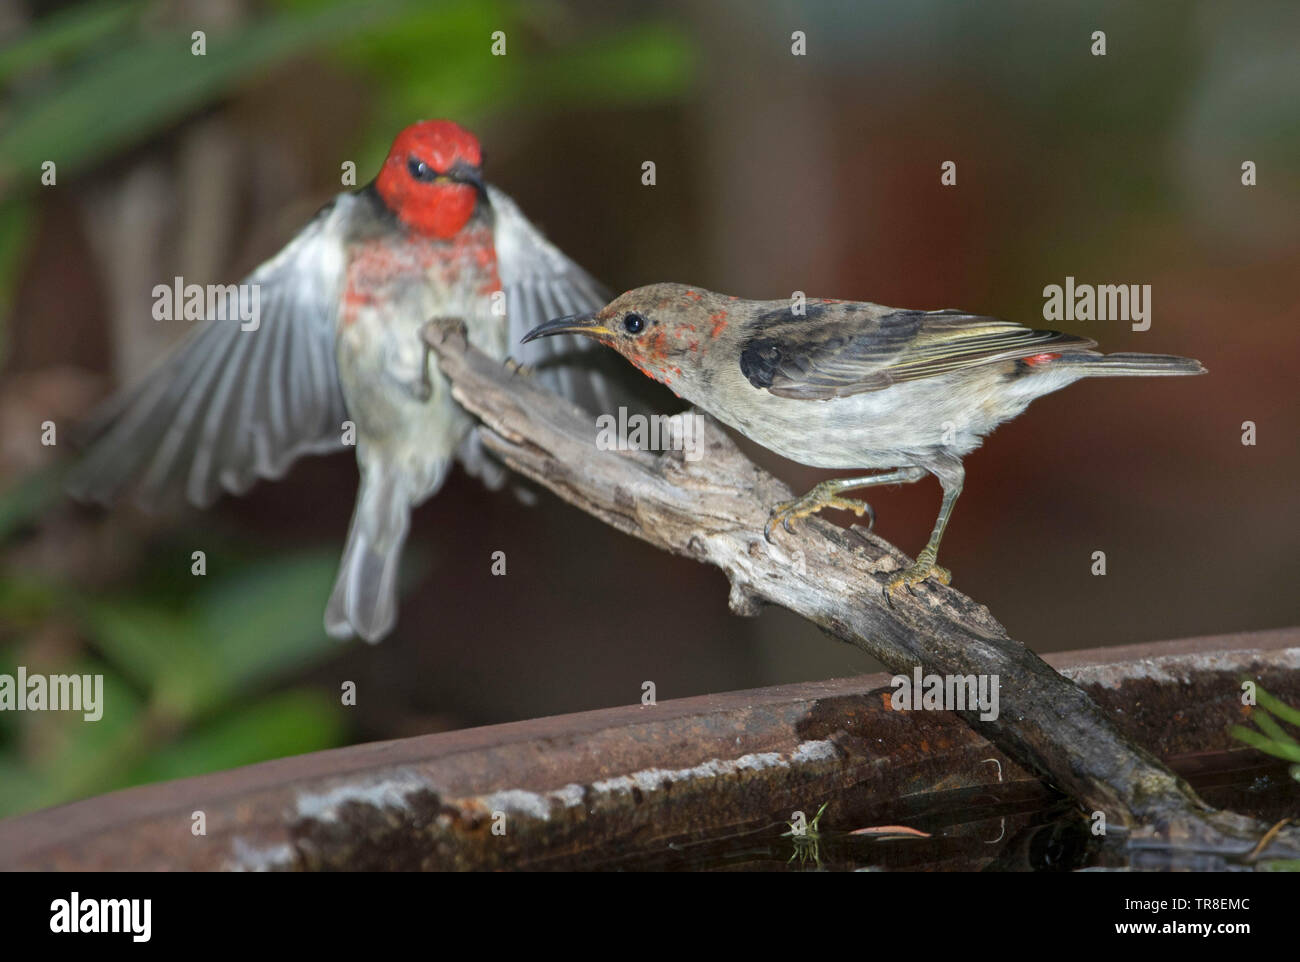 Beautiful adult and juvenile male Australian Scarlet Honeyeaters, Myzomela sanguinolenta, one in flight at garden bird bath - Stock Image